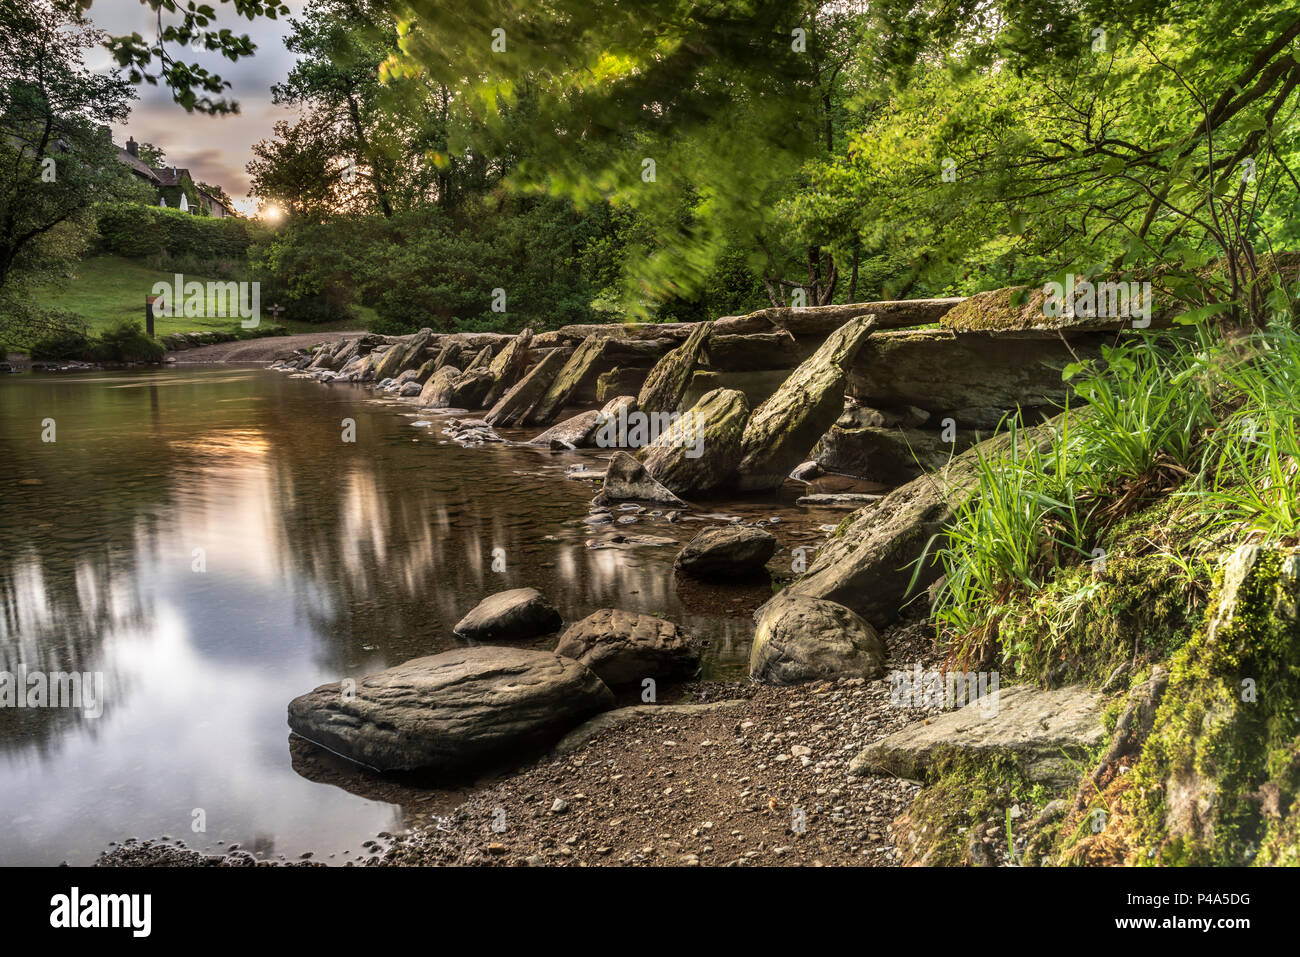 Tarr Steps Exmoor, UK. 21st June, 2018. UK Weather -June 21st, the longest day, the wind strengthens at dawn clearing the cloud allowing the sun to light up the historic Tarr Steps on the River Barle in Exmoor National Park in Somerset. Credit: Terry Mathews/Alamy Live News - Stock Image